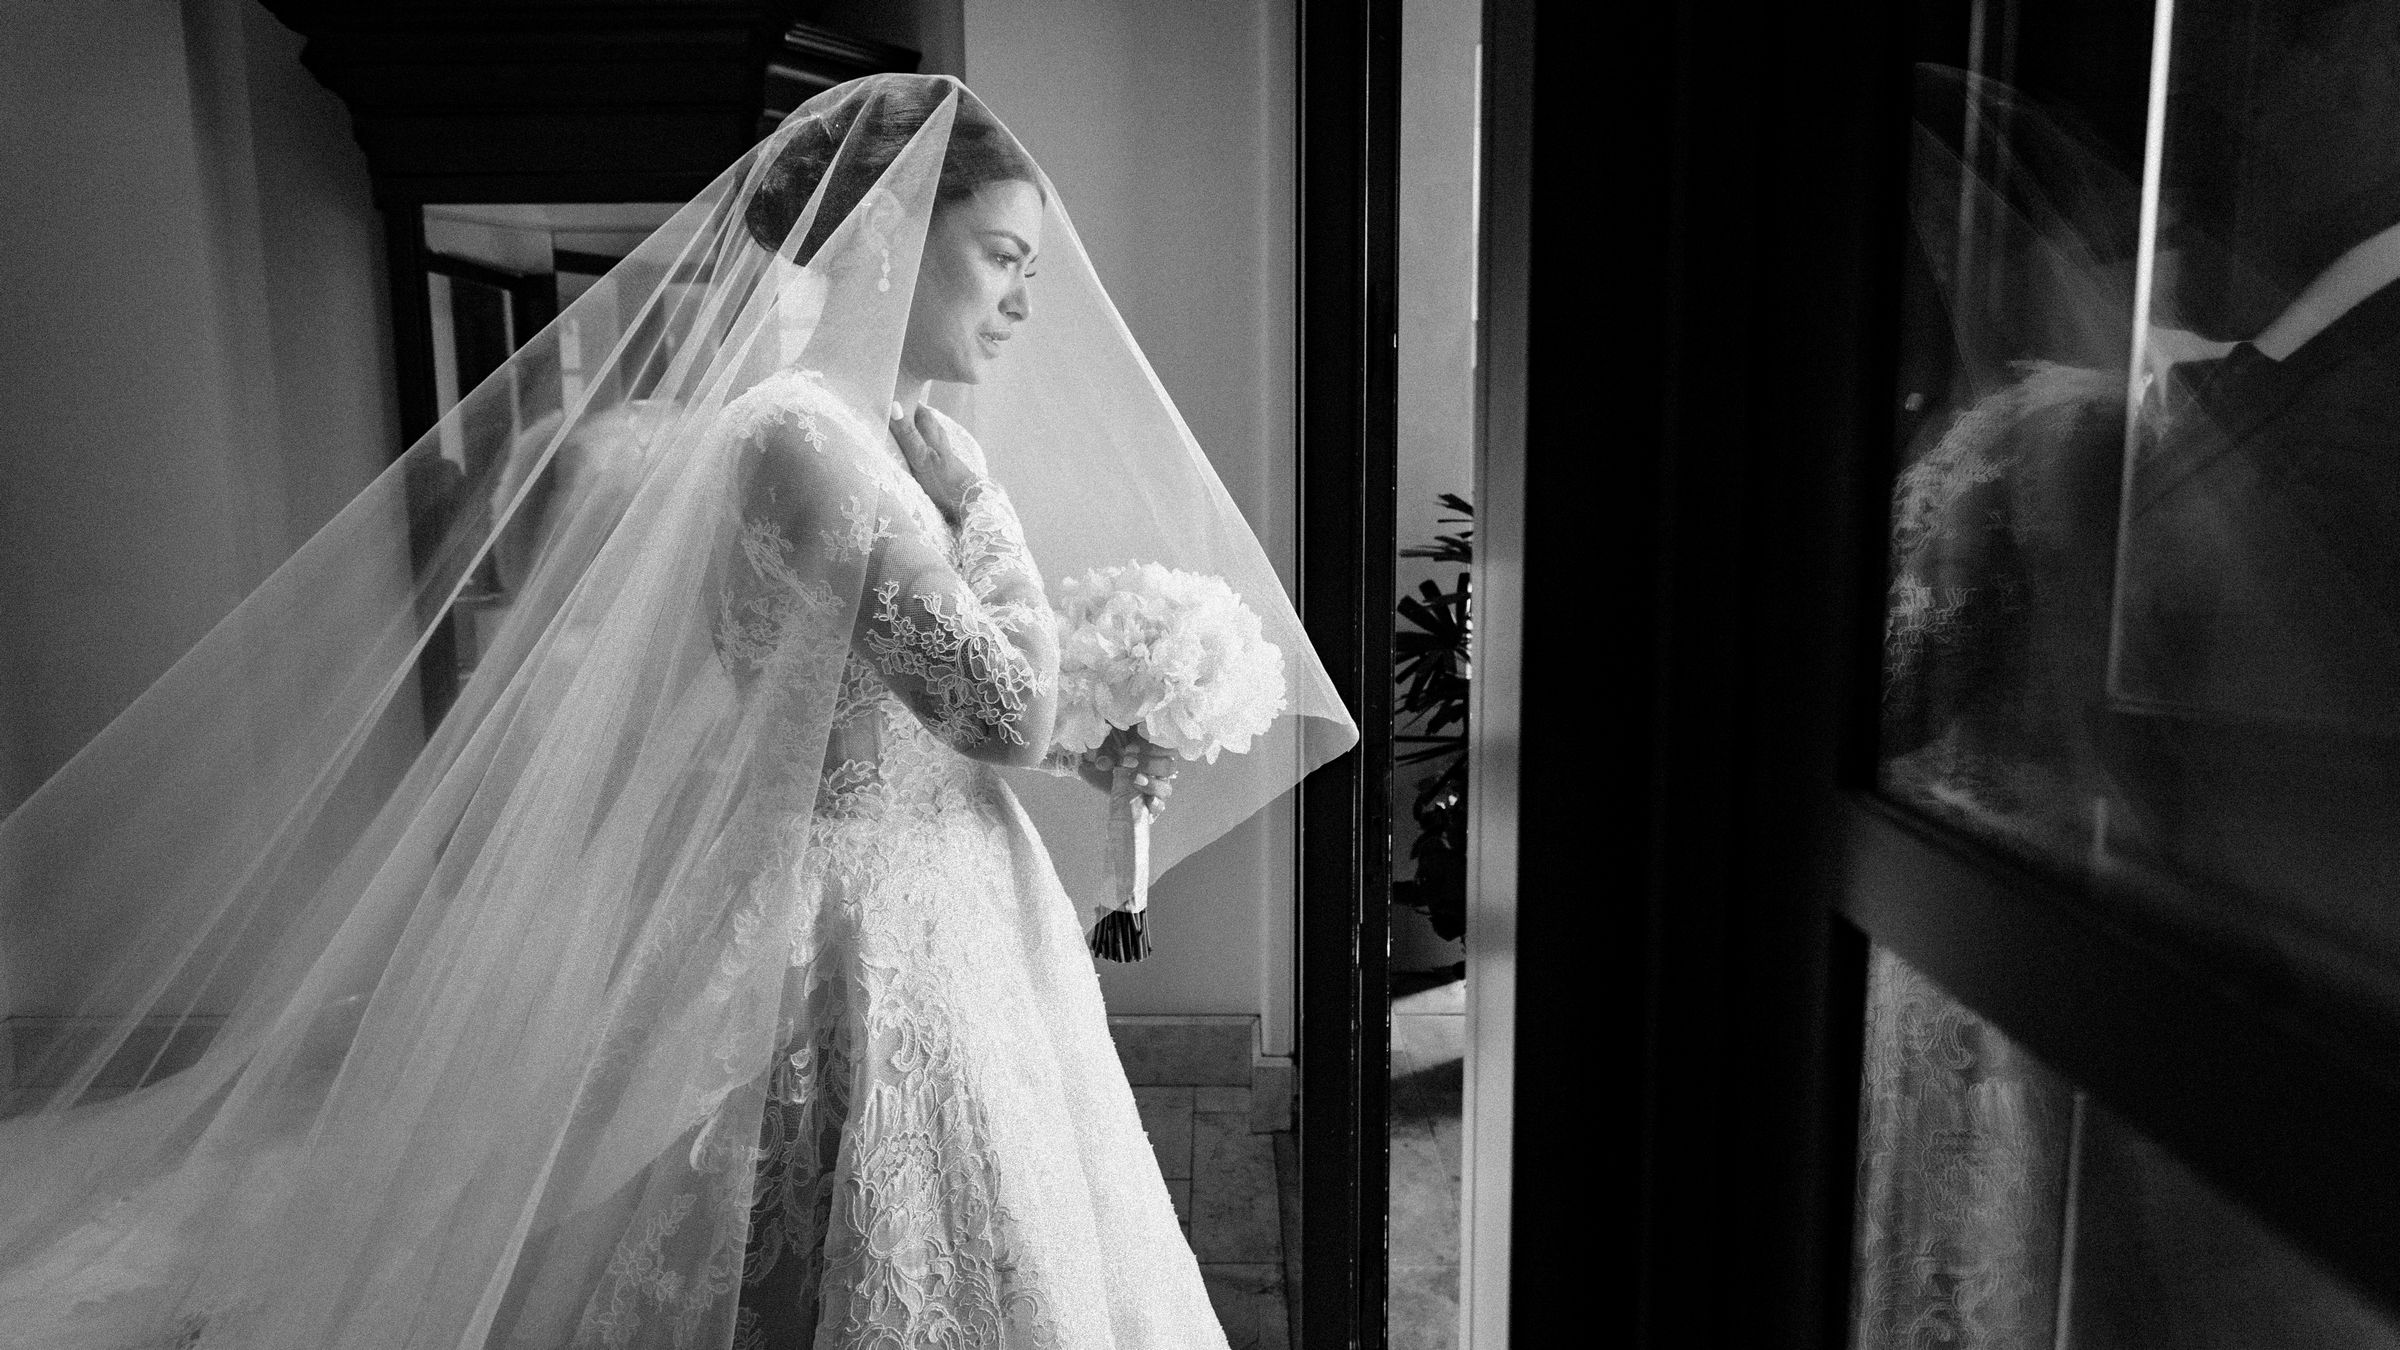 maria-emotional-moments-before-walking-down-the-aisle-wedding-mzef1494.jpg